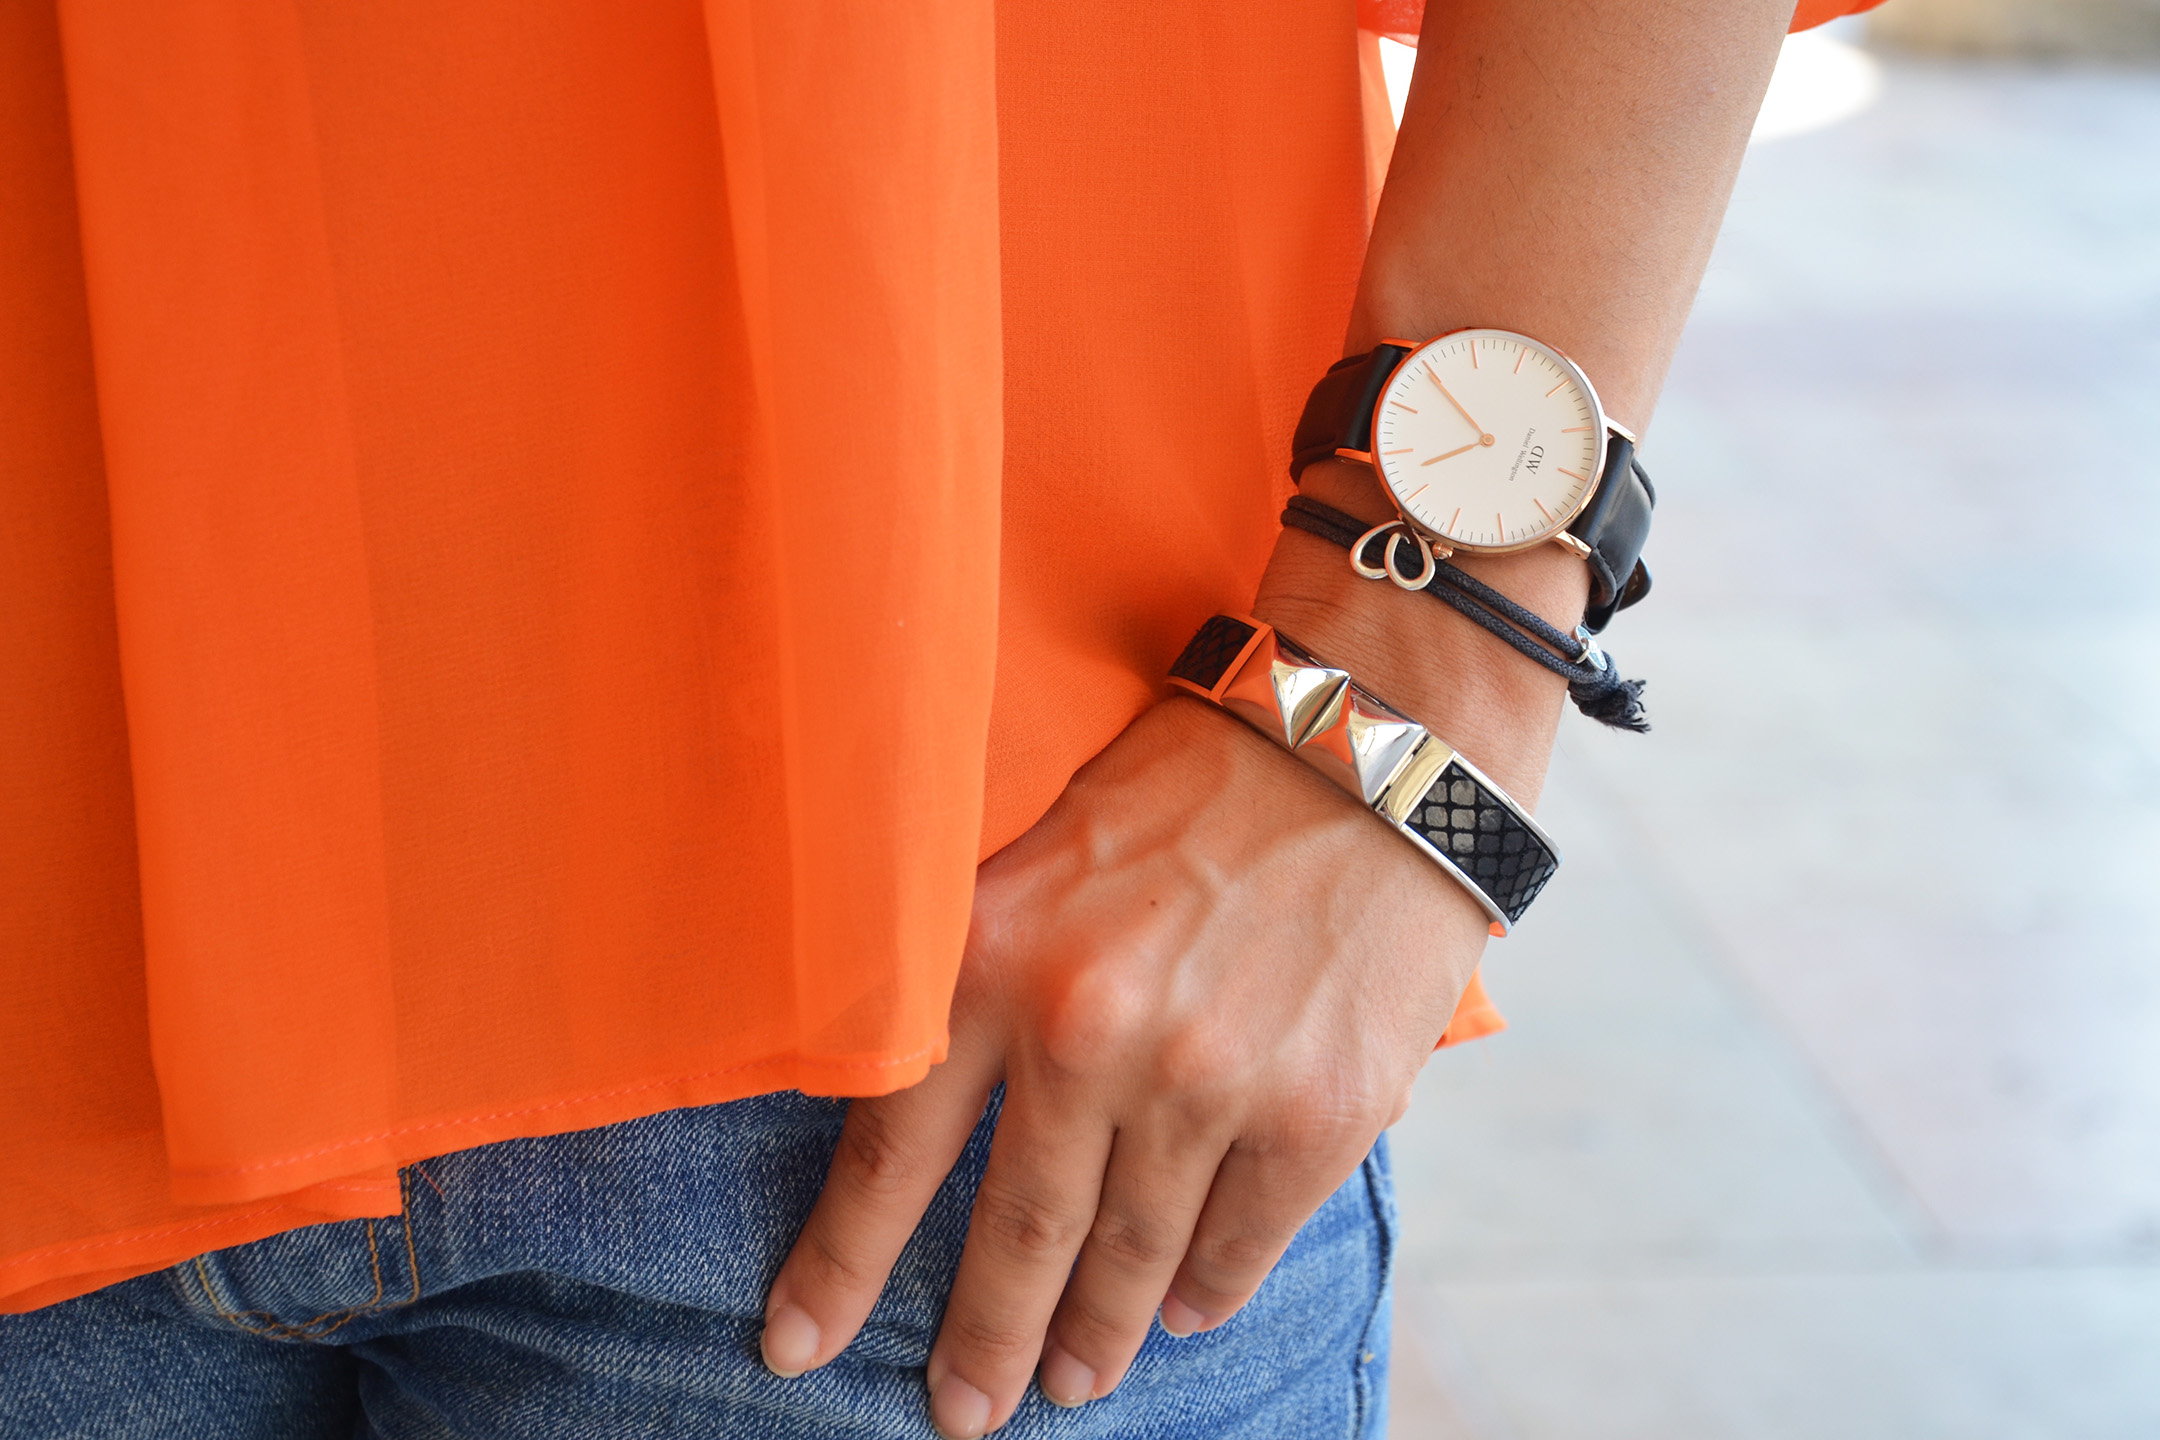 look-alessia-canella-shorts-blusa-arancio-watch